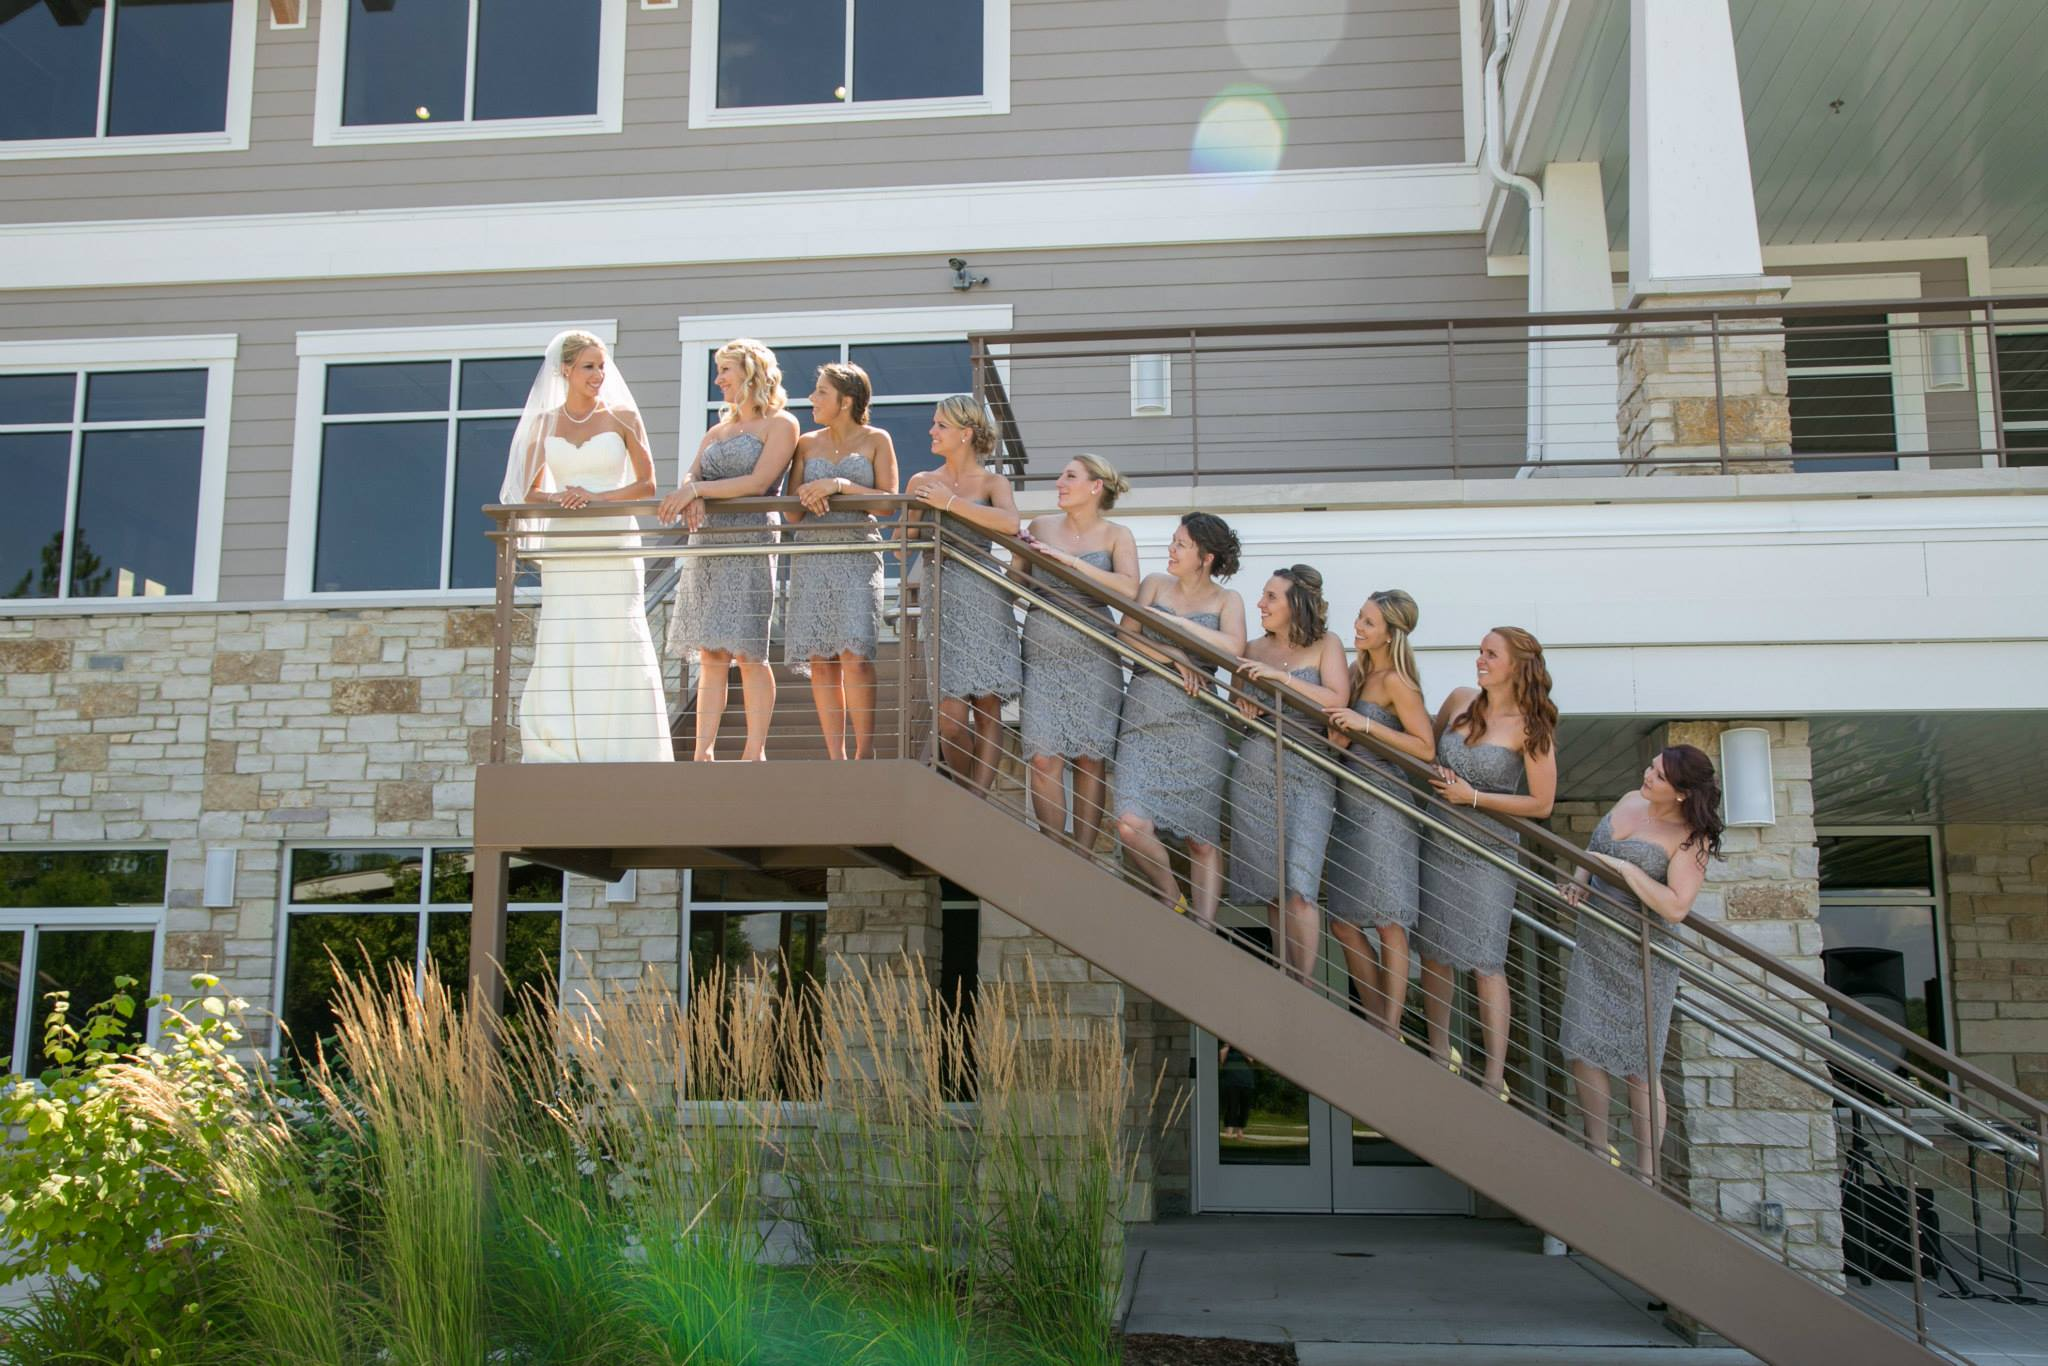 Weddings at the Oconomowoc Community Center